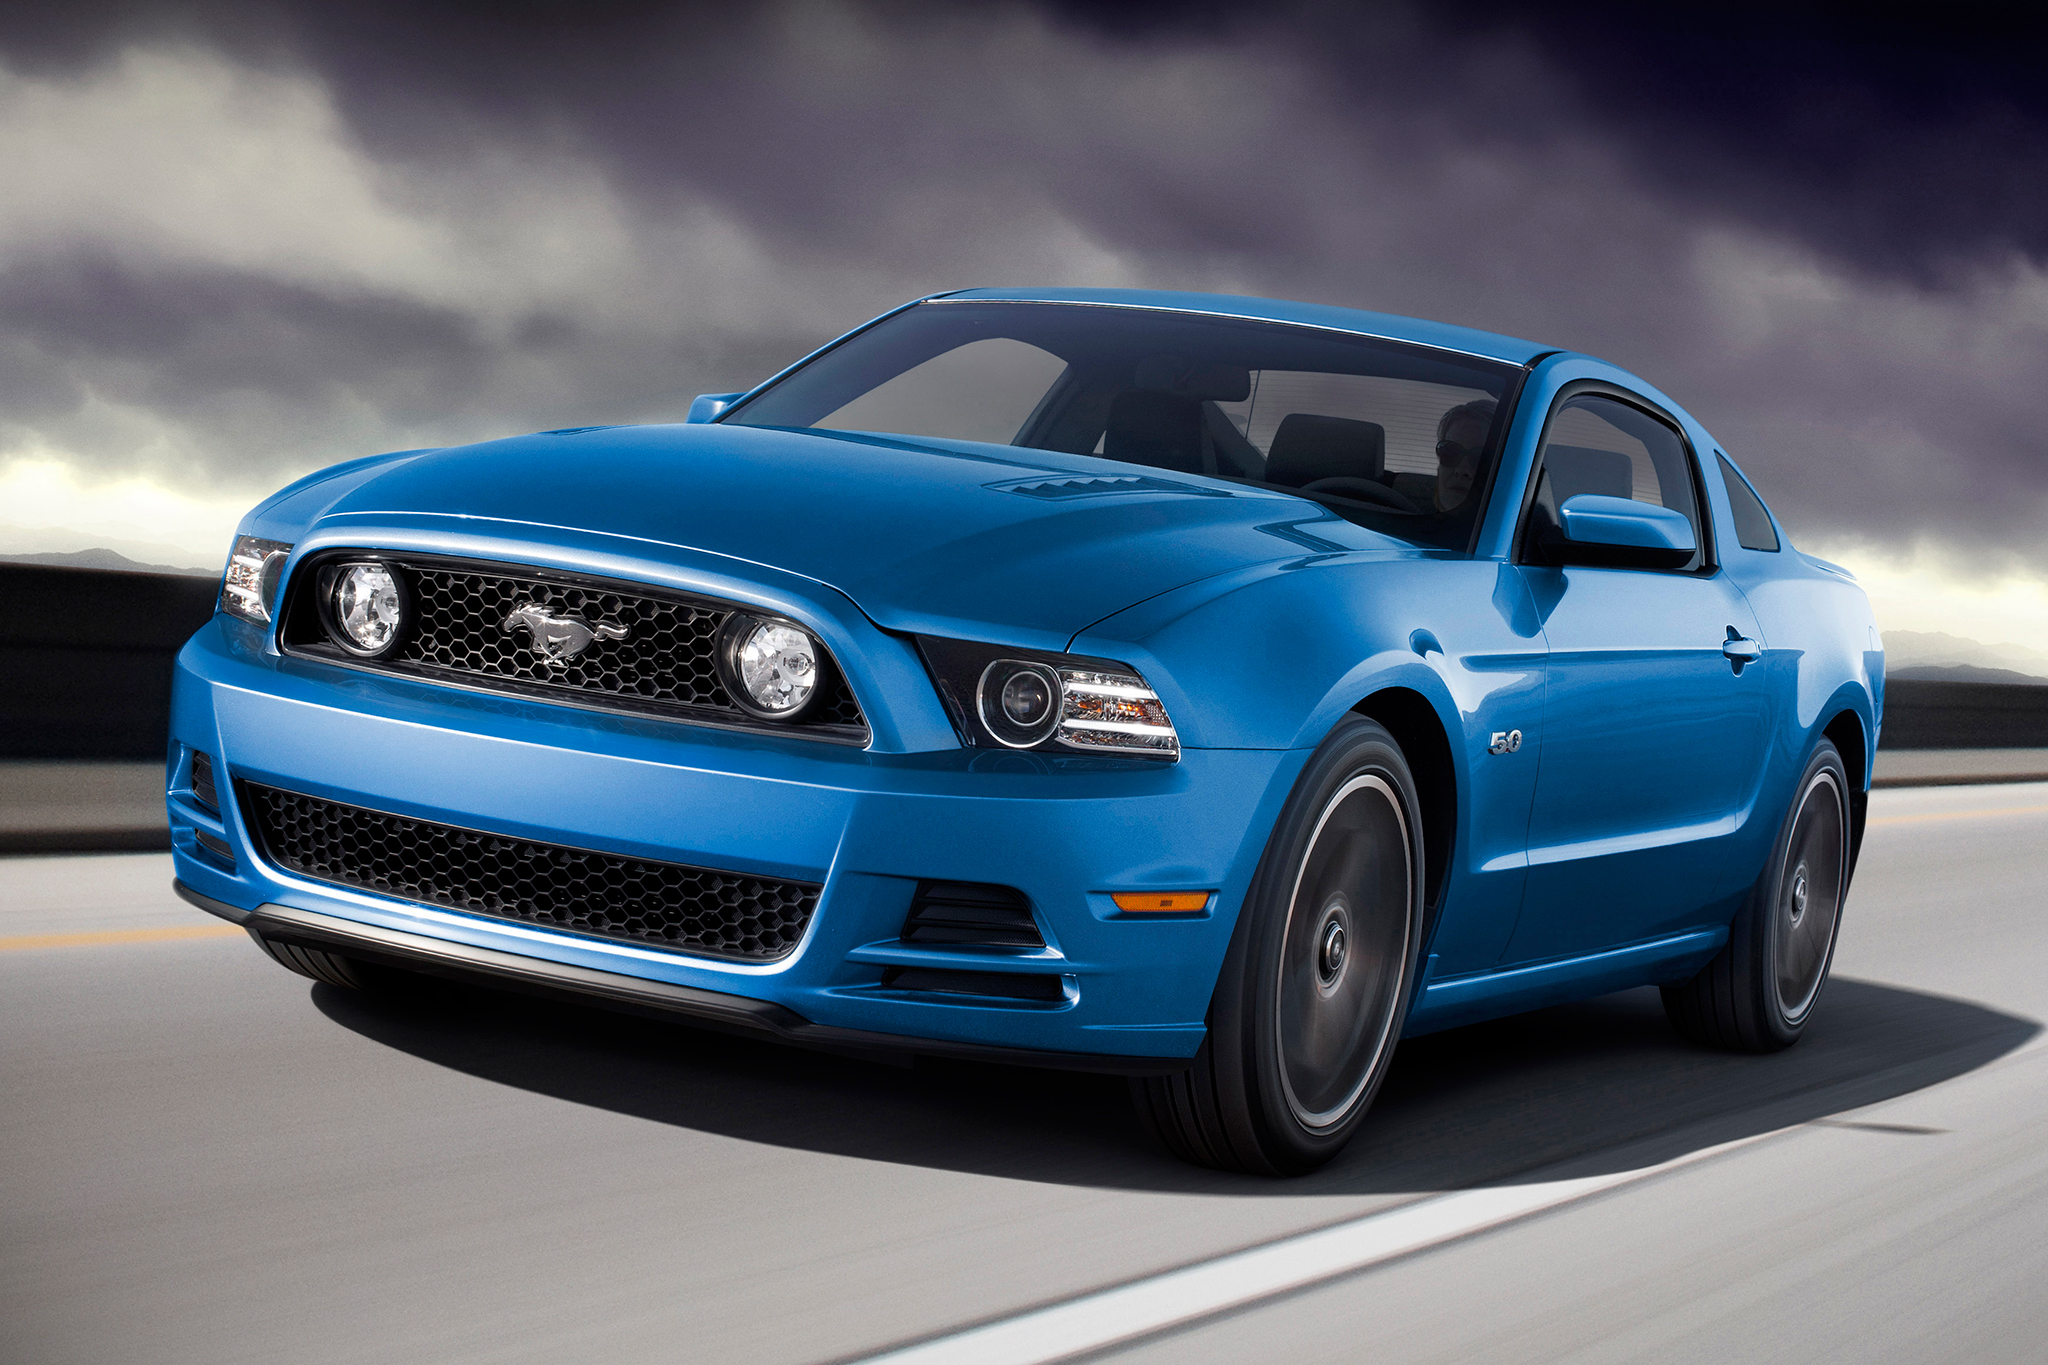 2014 Ford Mustang #2